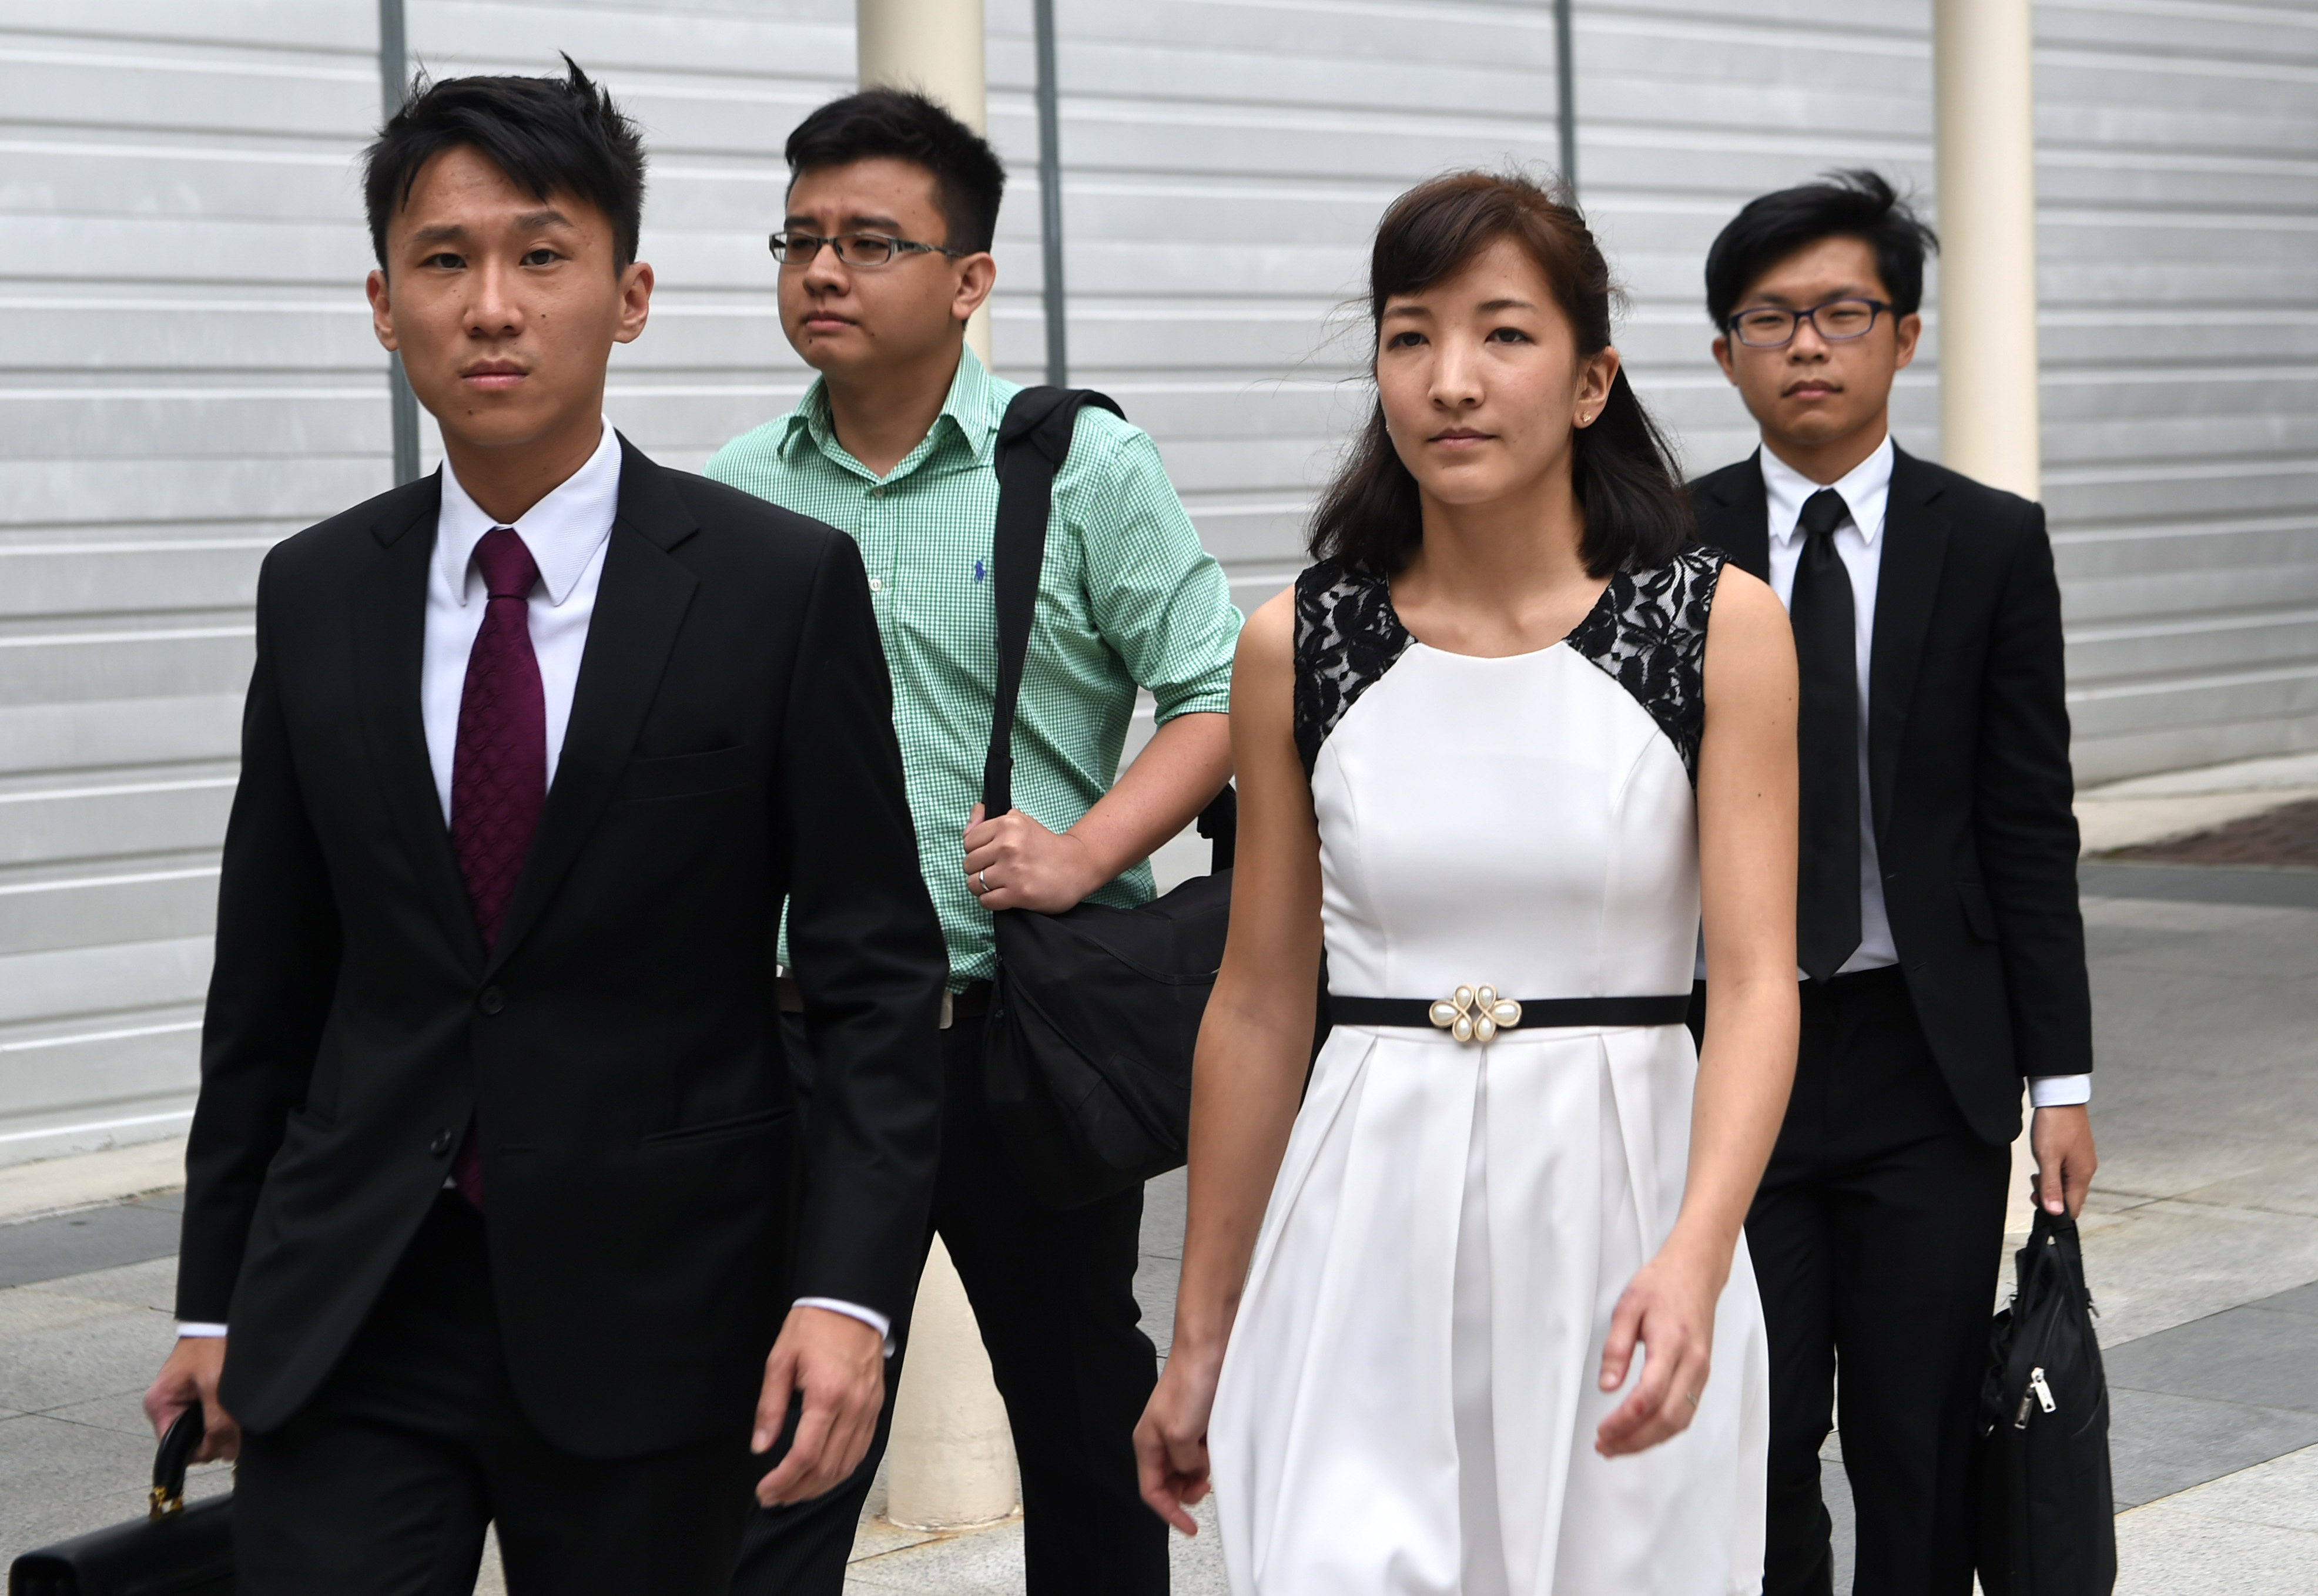 Australian Japanese Ai Takagi, front right, and her Singaporean husband Yang Kaiheng, back left, with their lawyer Choo Zheng Xi, front left, leave the state court after a trial in Singapore on March 7, 2016